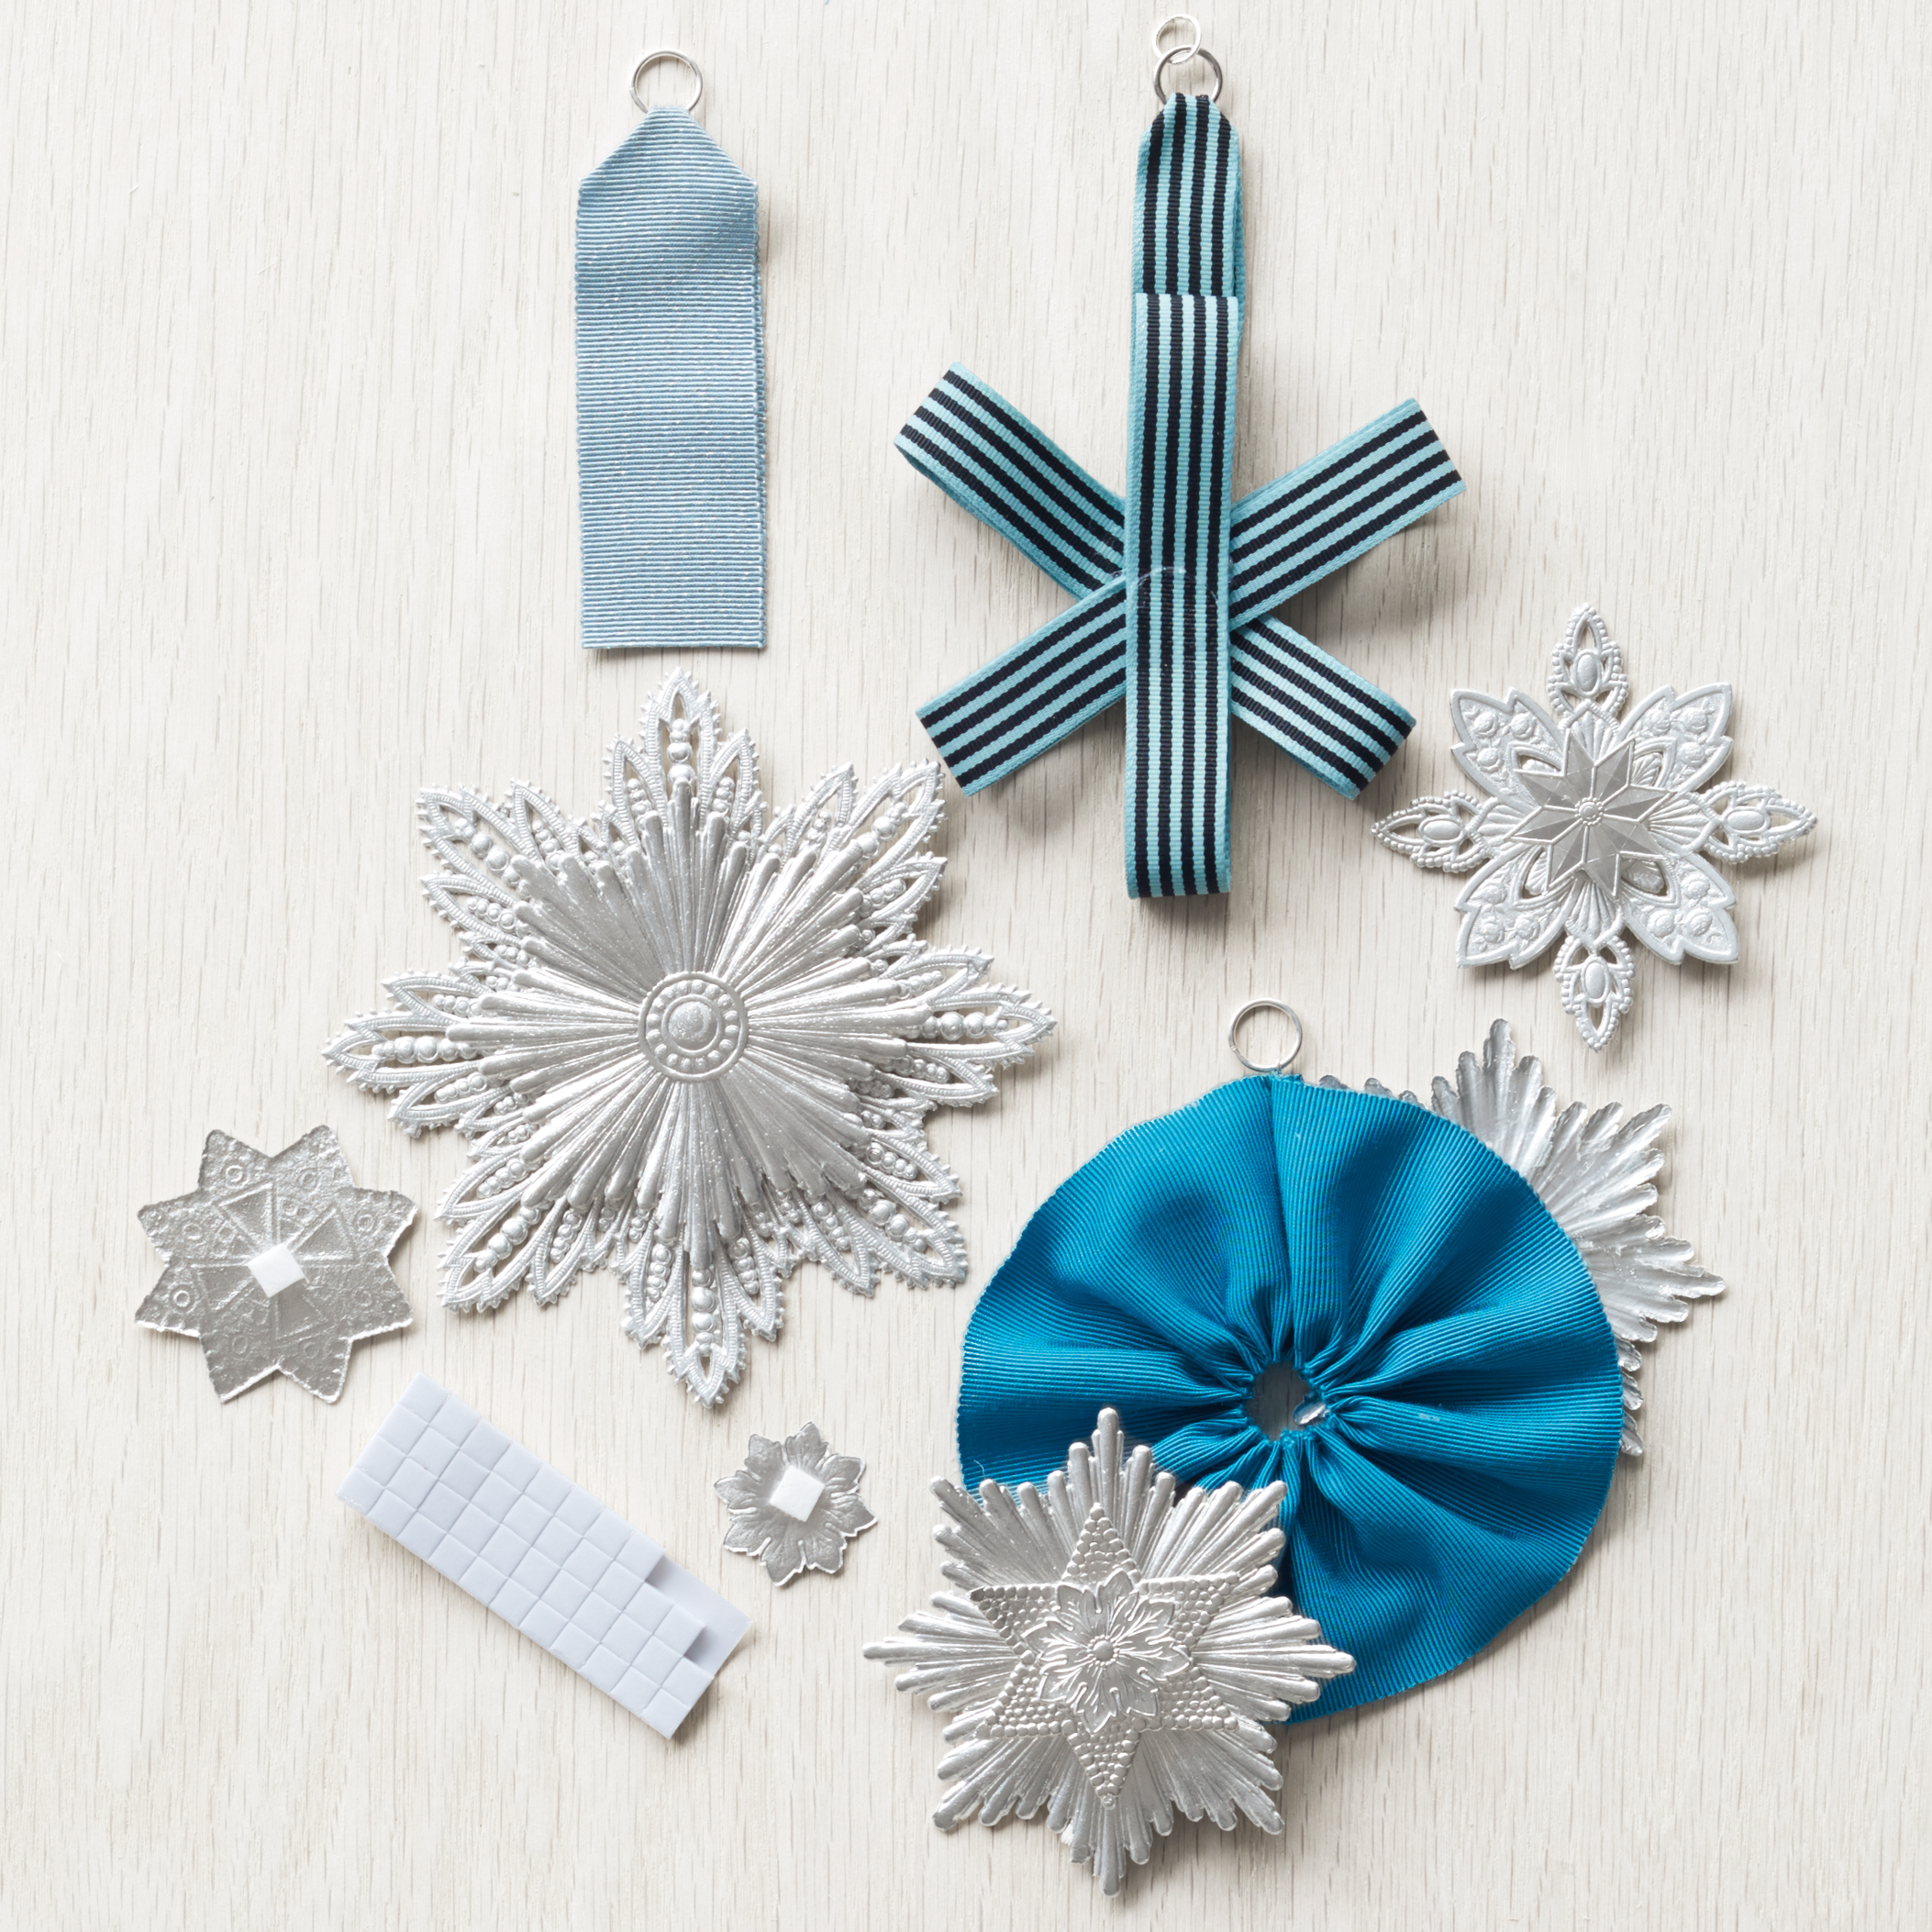 dresden-ornaments-how-to-120-d112423.jpg